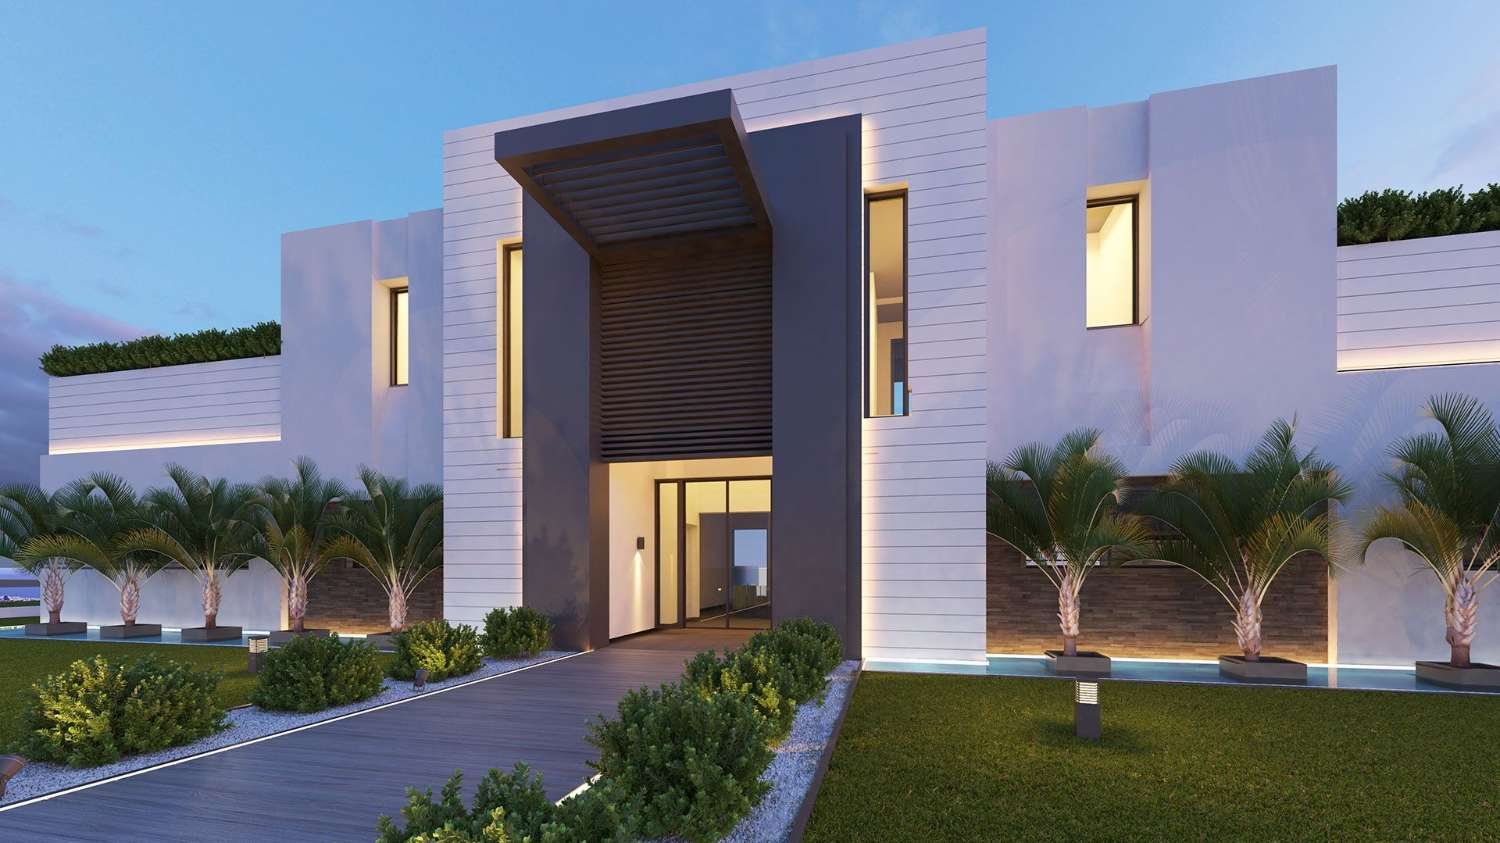 Promotion of 57 homes with garages and storage rooms in Benahavis (Málaga)